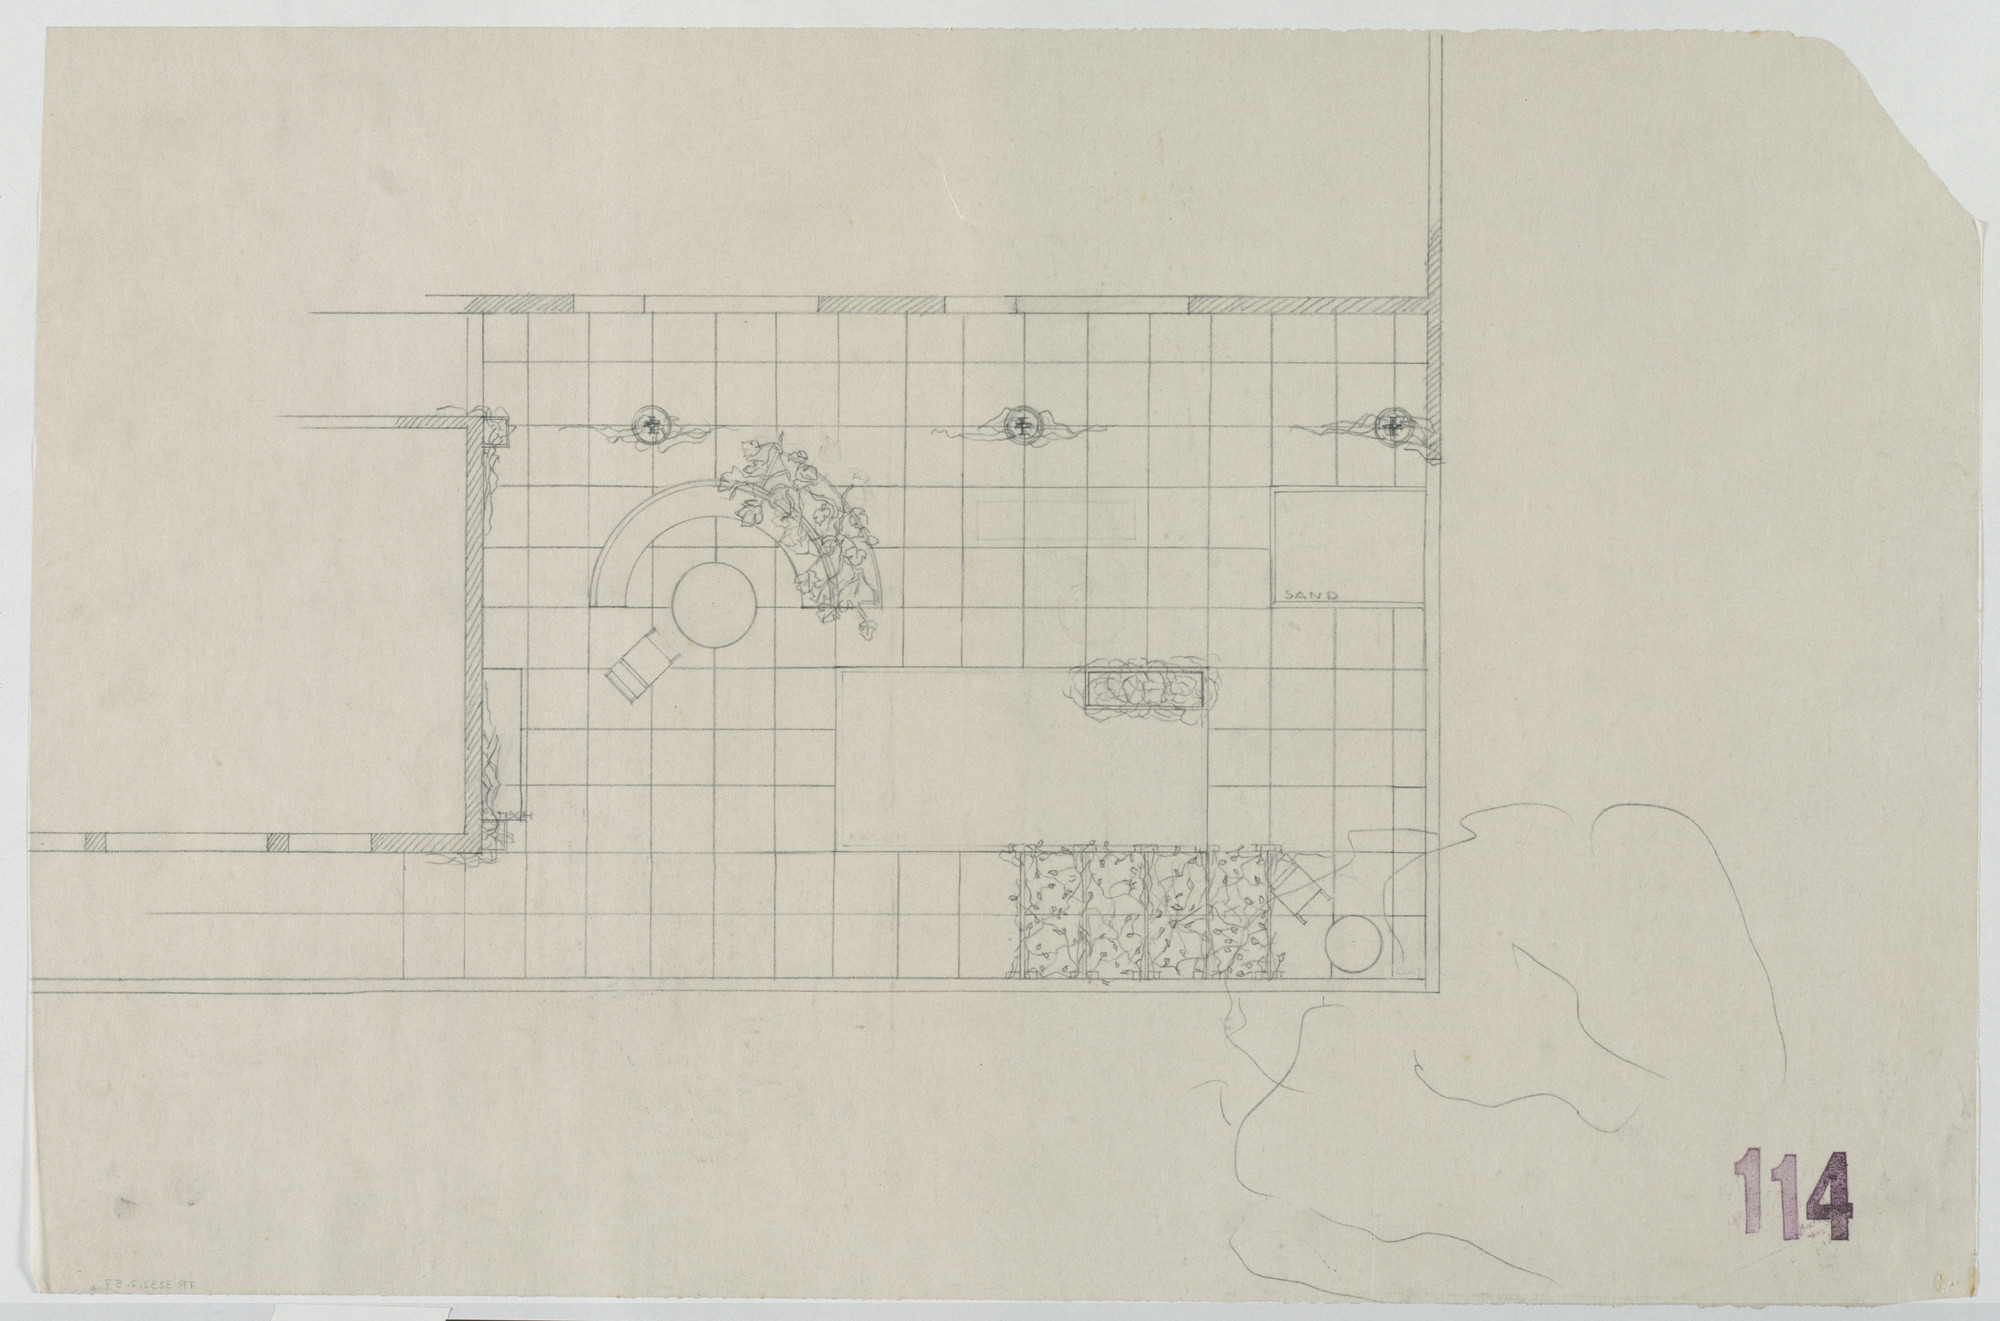 Ludwig Mies van der Rohe. Tugendhat House, Brno, Czech Republic (Plan, upper-floor southeast corner terrace). 1928-1930